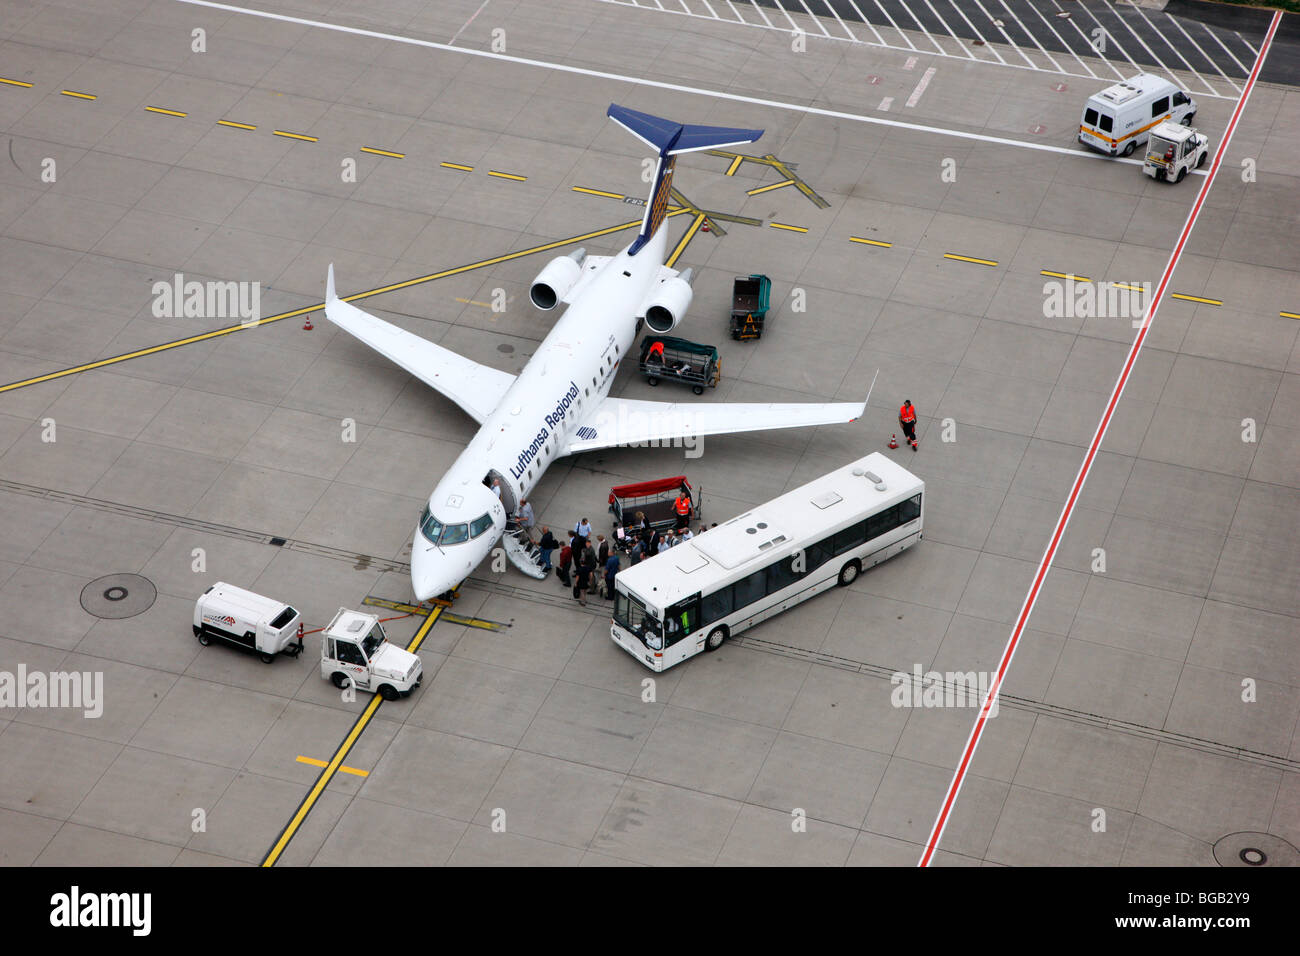 Lufthansa regional jet on Duesseldorf airport, passengers boarding the plane - Stock Image